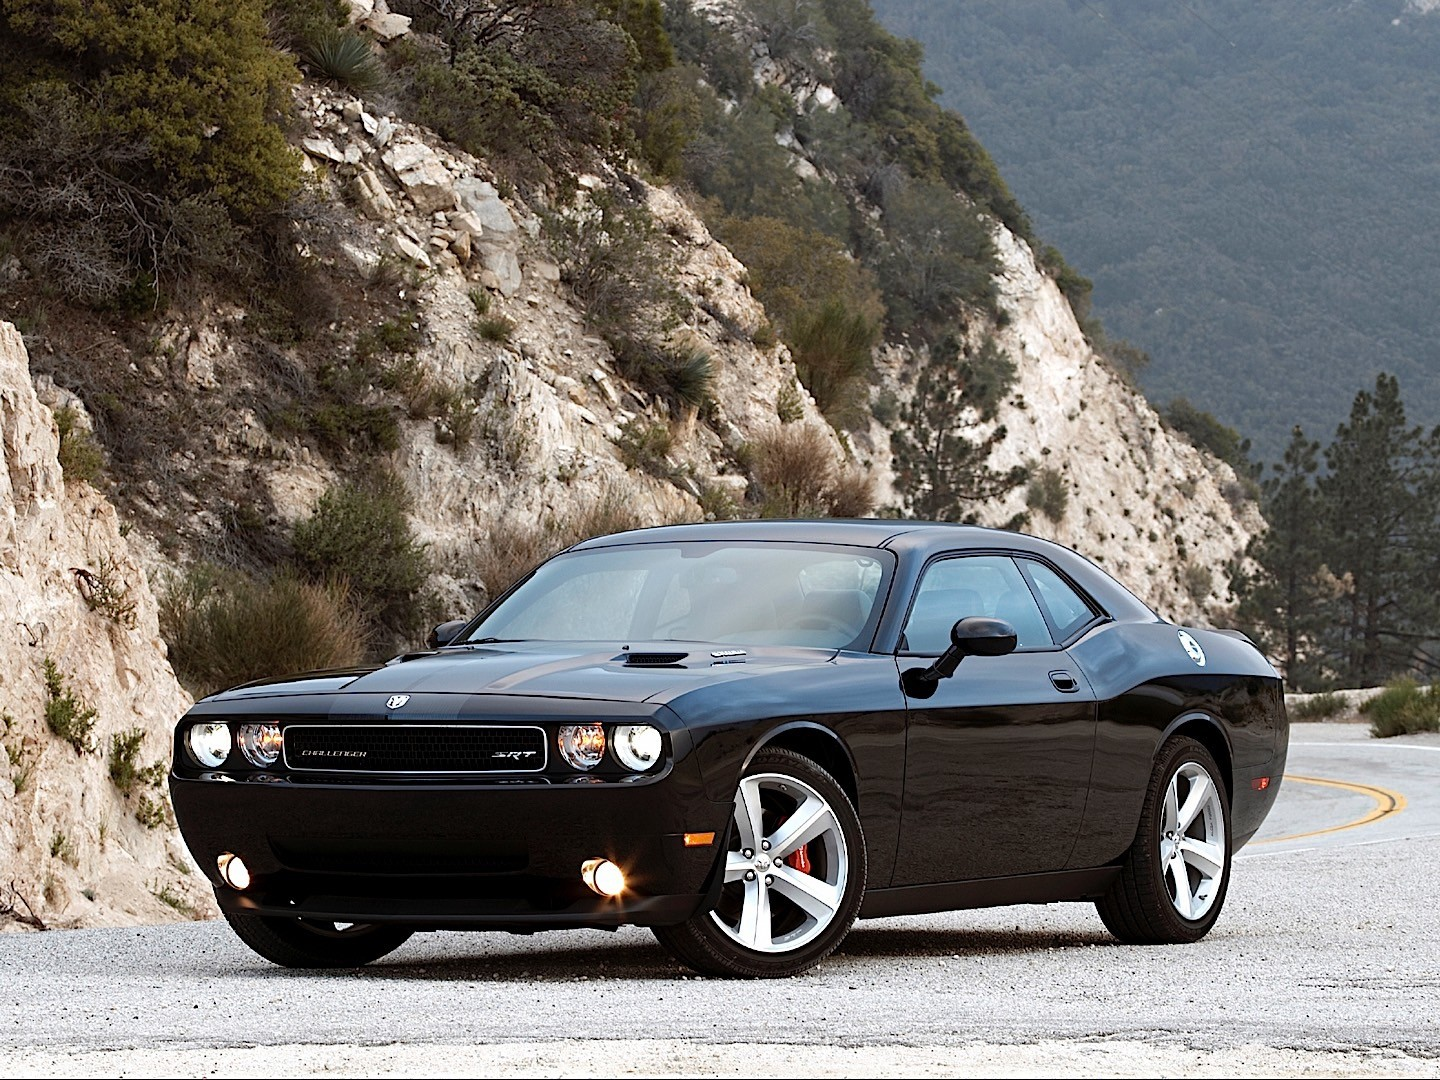 dodge challenger srt8 specs 2008 2009 2010 2011 2012 2013 autoevolution. Black Bedroom Furniture Sets. Home Design Ideas